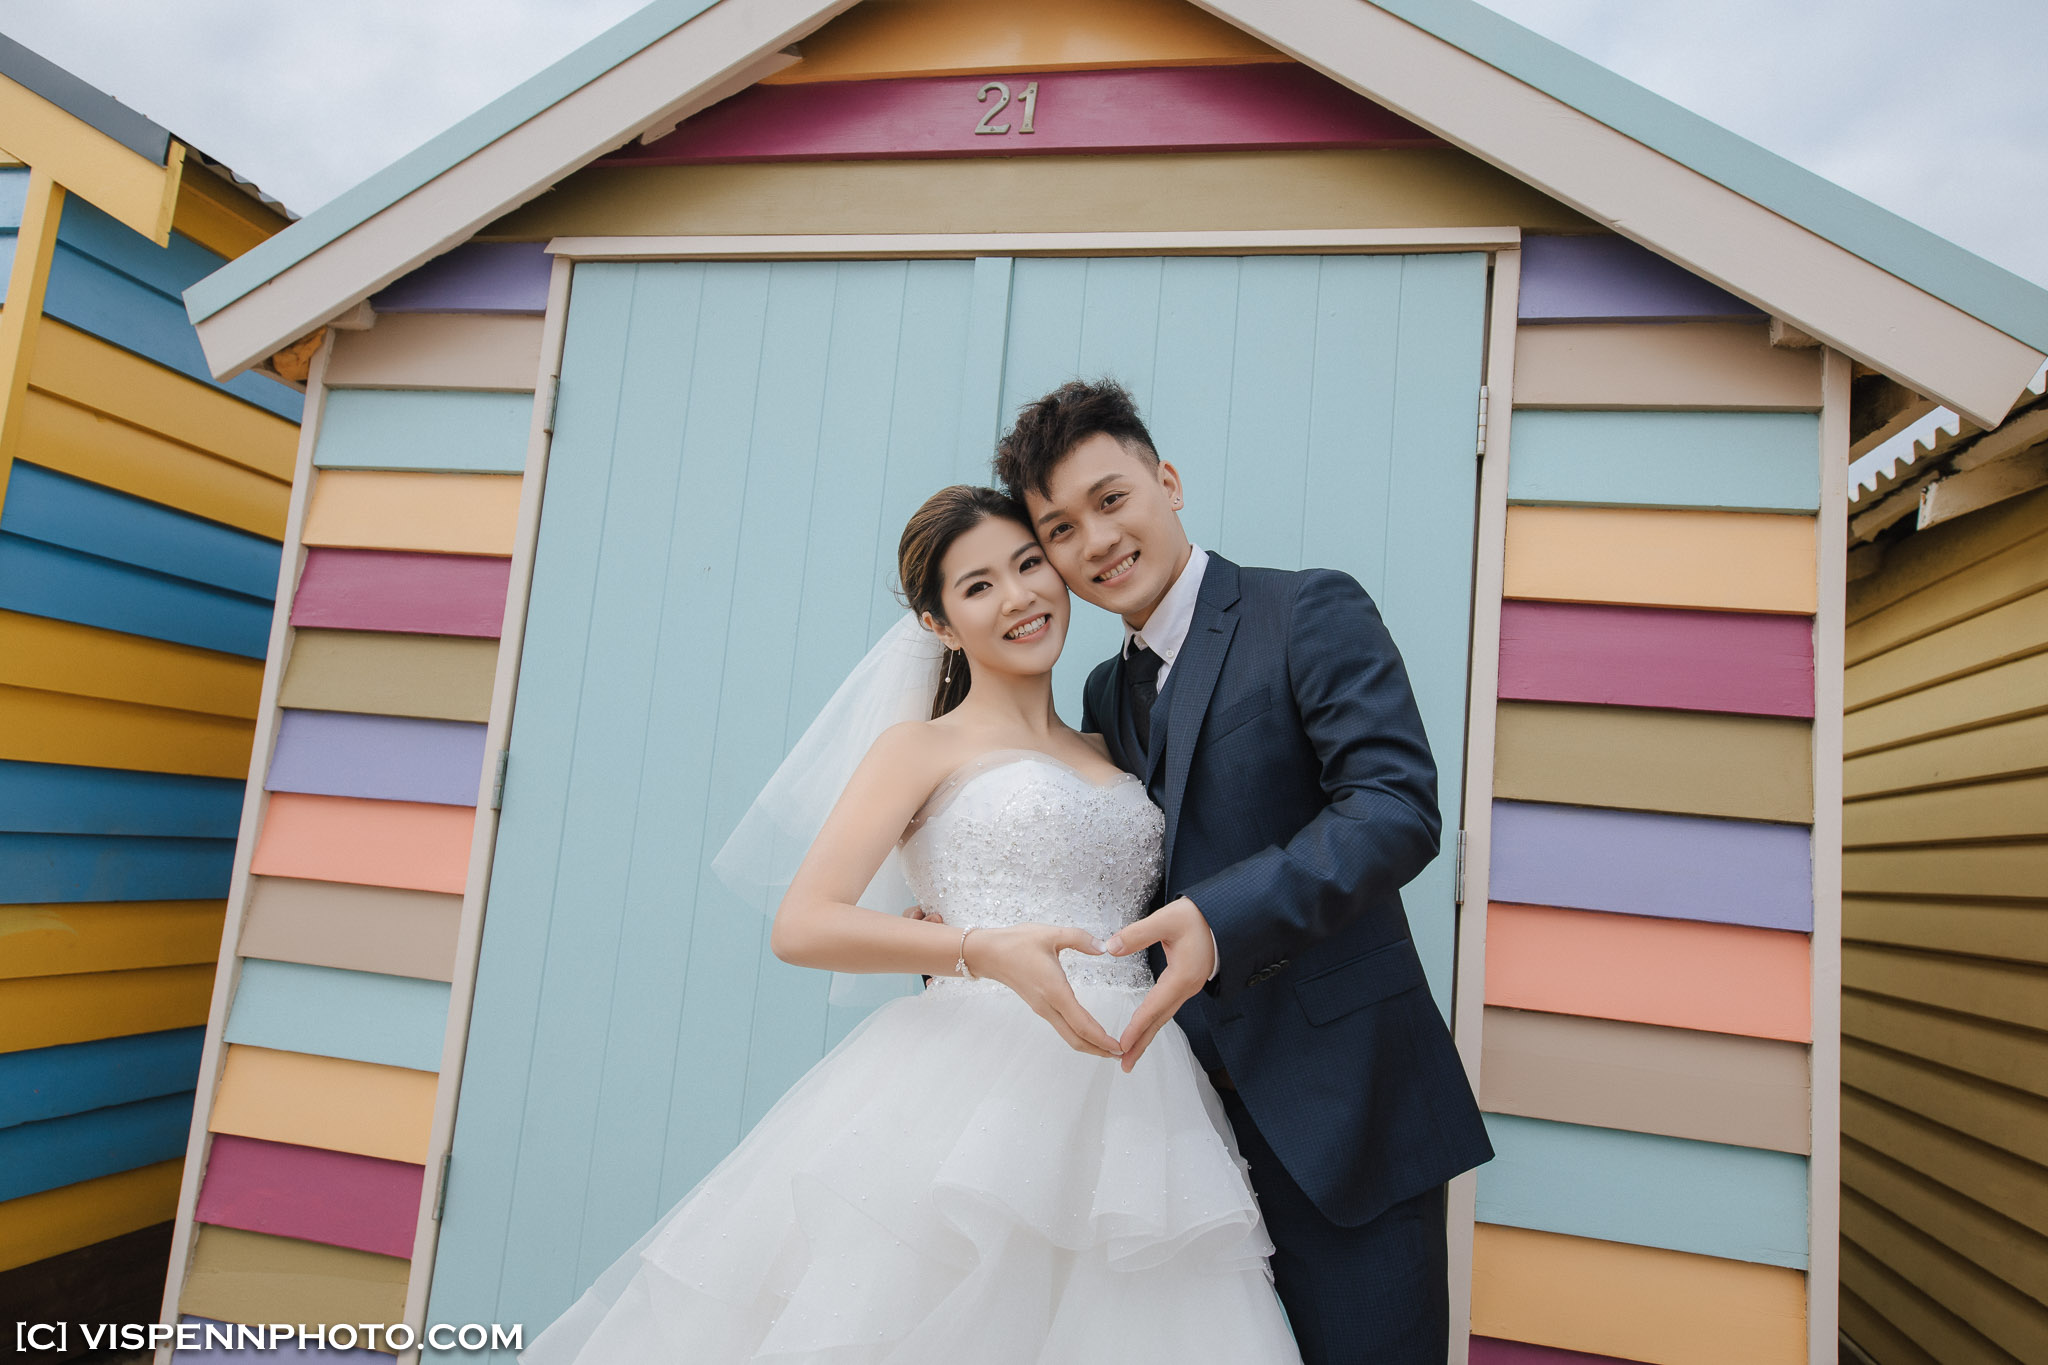 PRE WEDDING Photography Melbourne GiGi 7194 EOSR ZHPENN